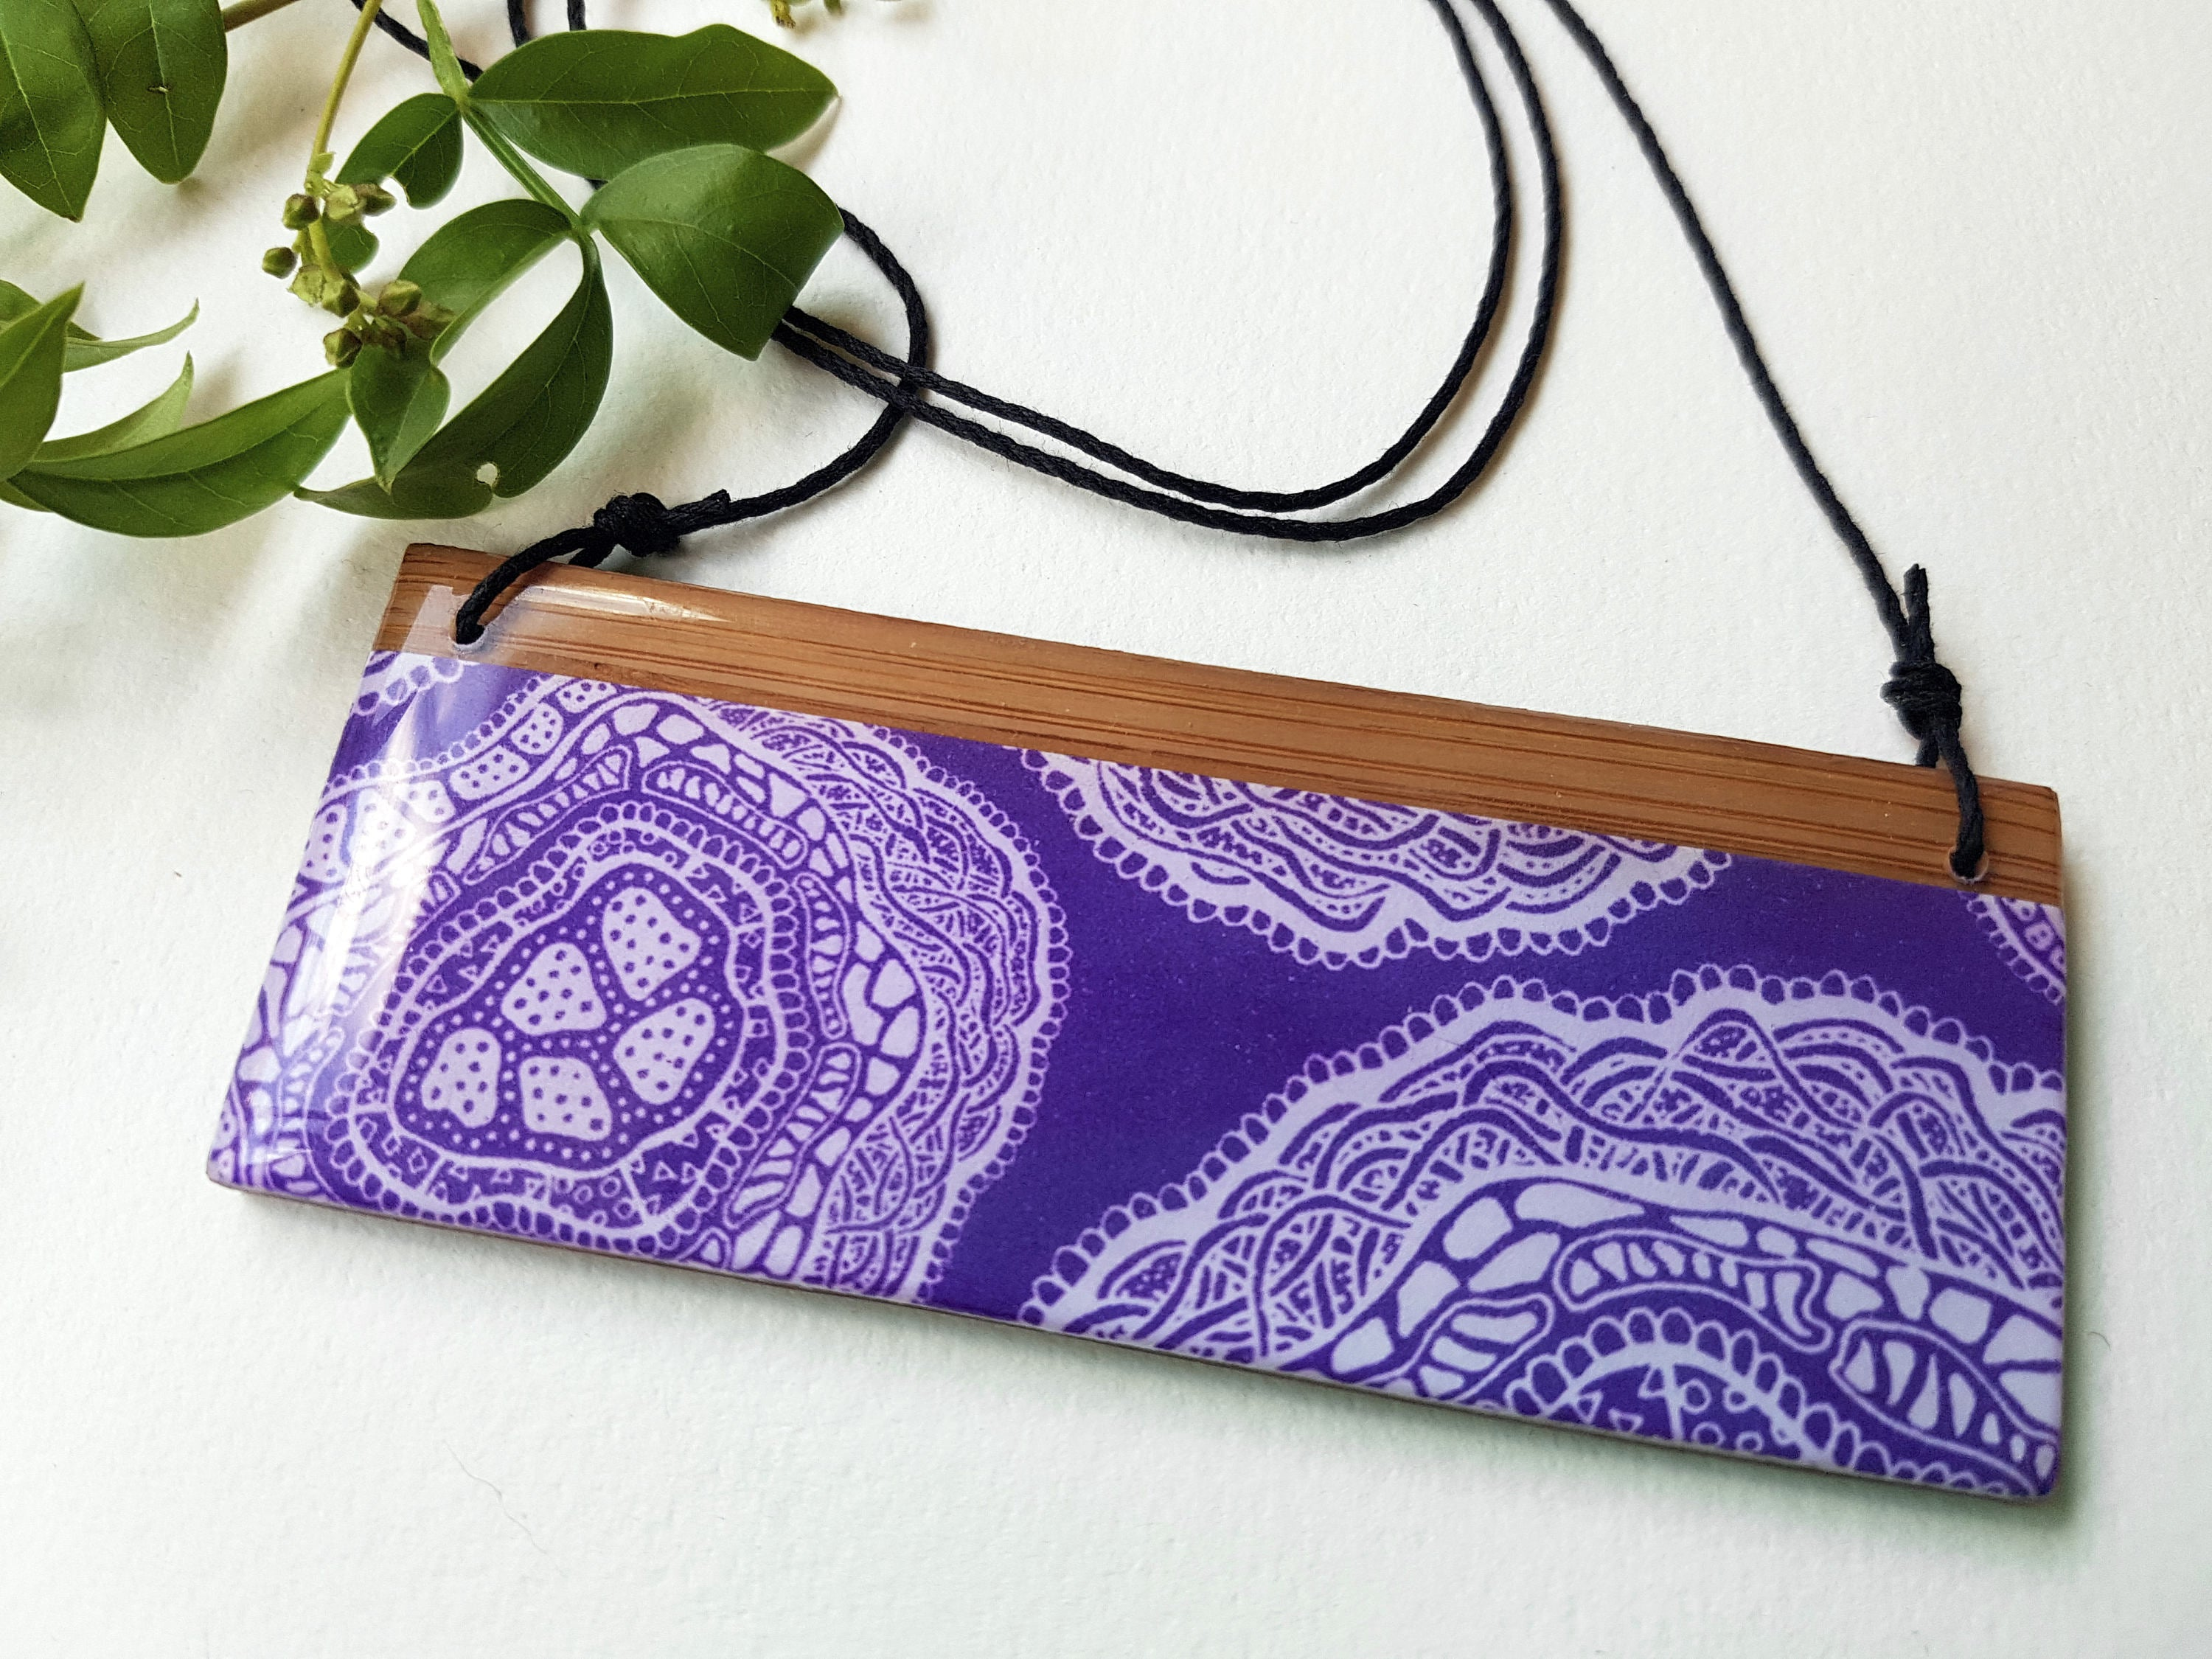 bar pendant necklace in the pattern purple haze